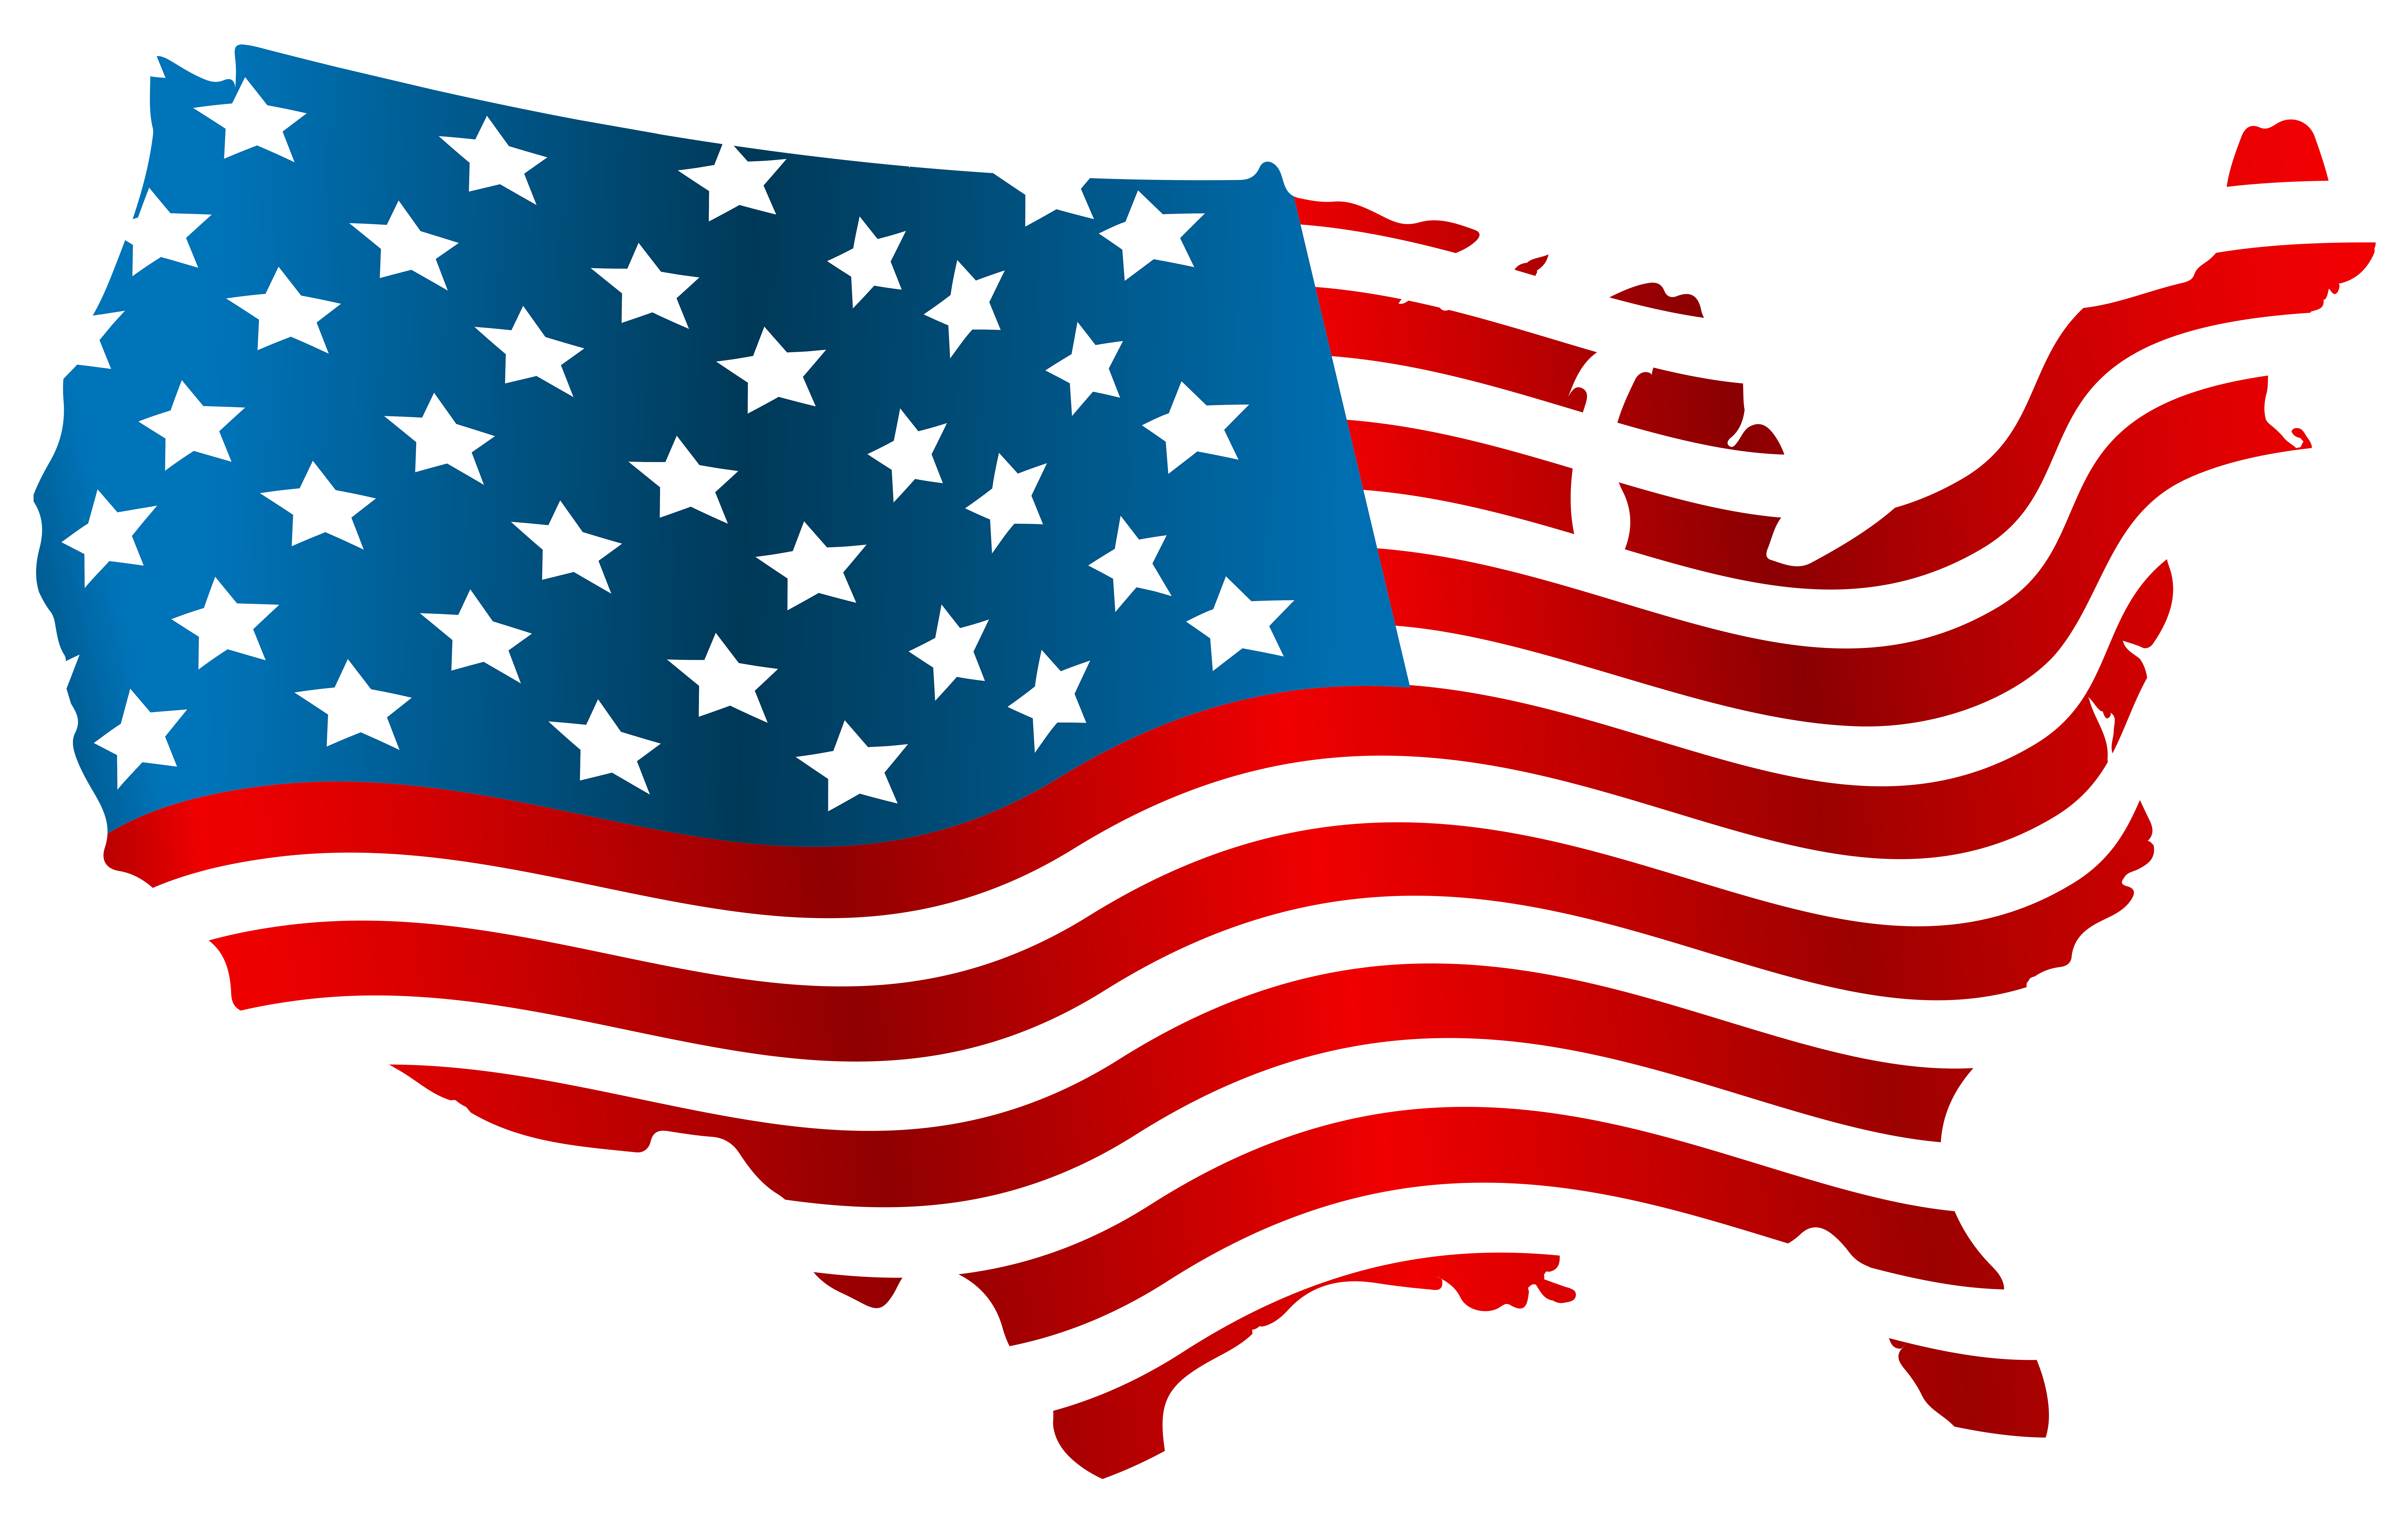 3663 United States free clipart.